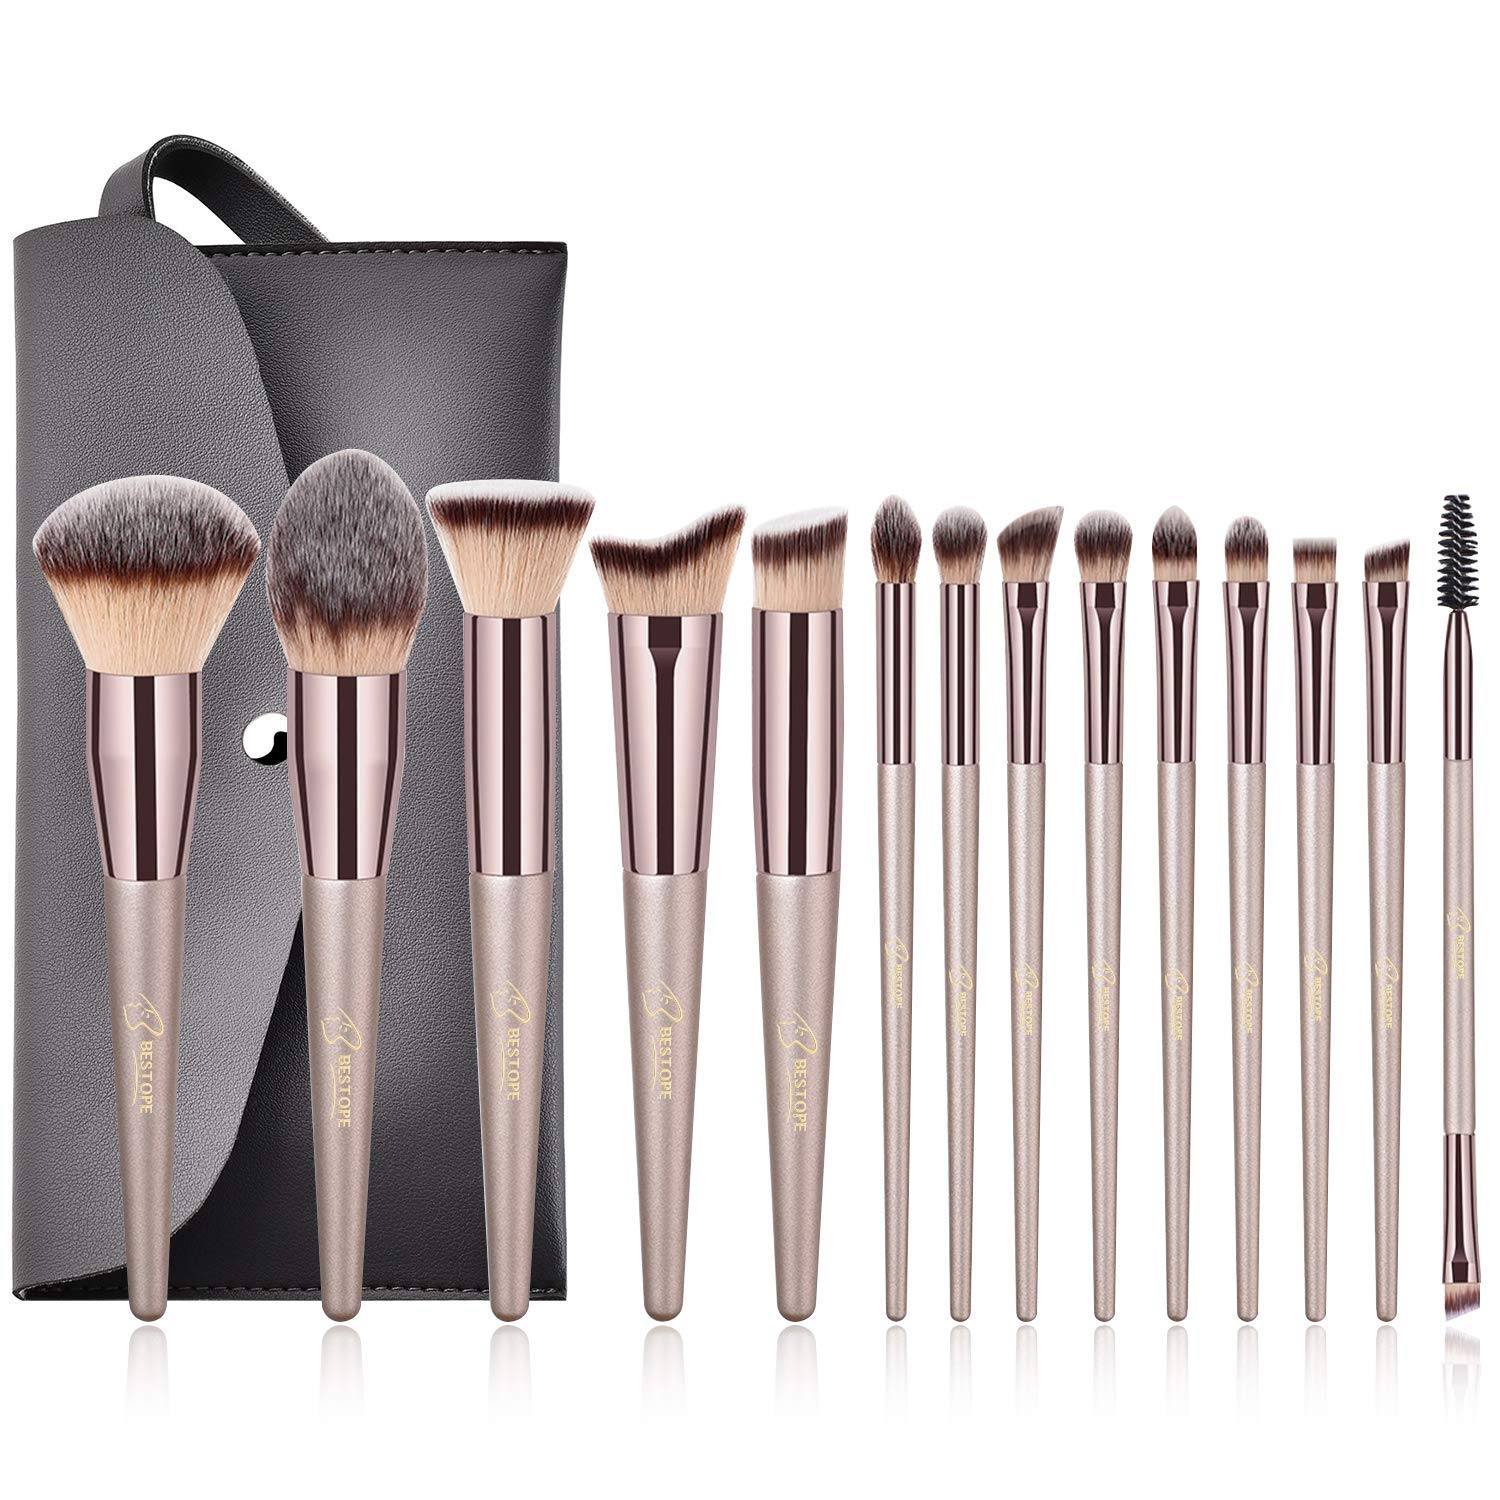 d840d0b35783 Makeup Brushes BESTOPE 14 Pcs Premium Synthetic Make up Brushes Champagne  Gold Brushes for Foundation Kabuki Blush Concealer Eyeshadow